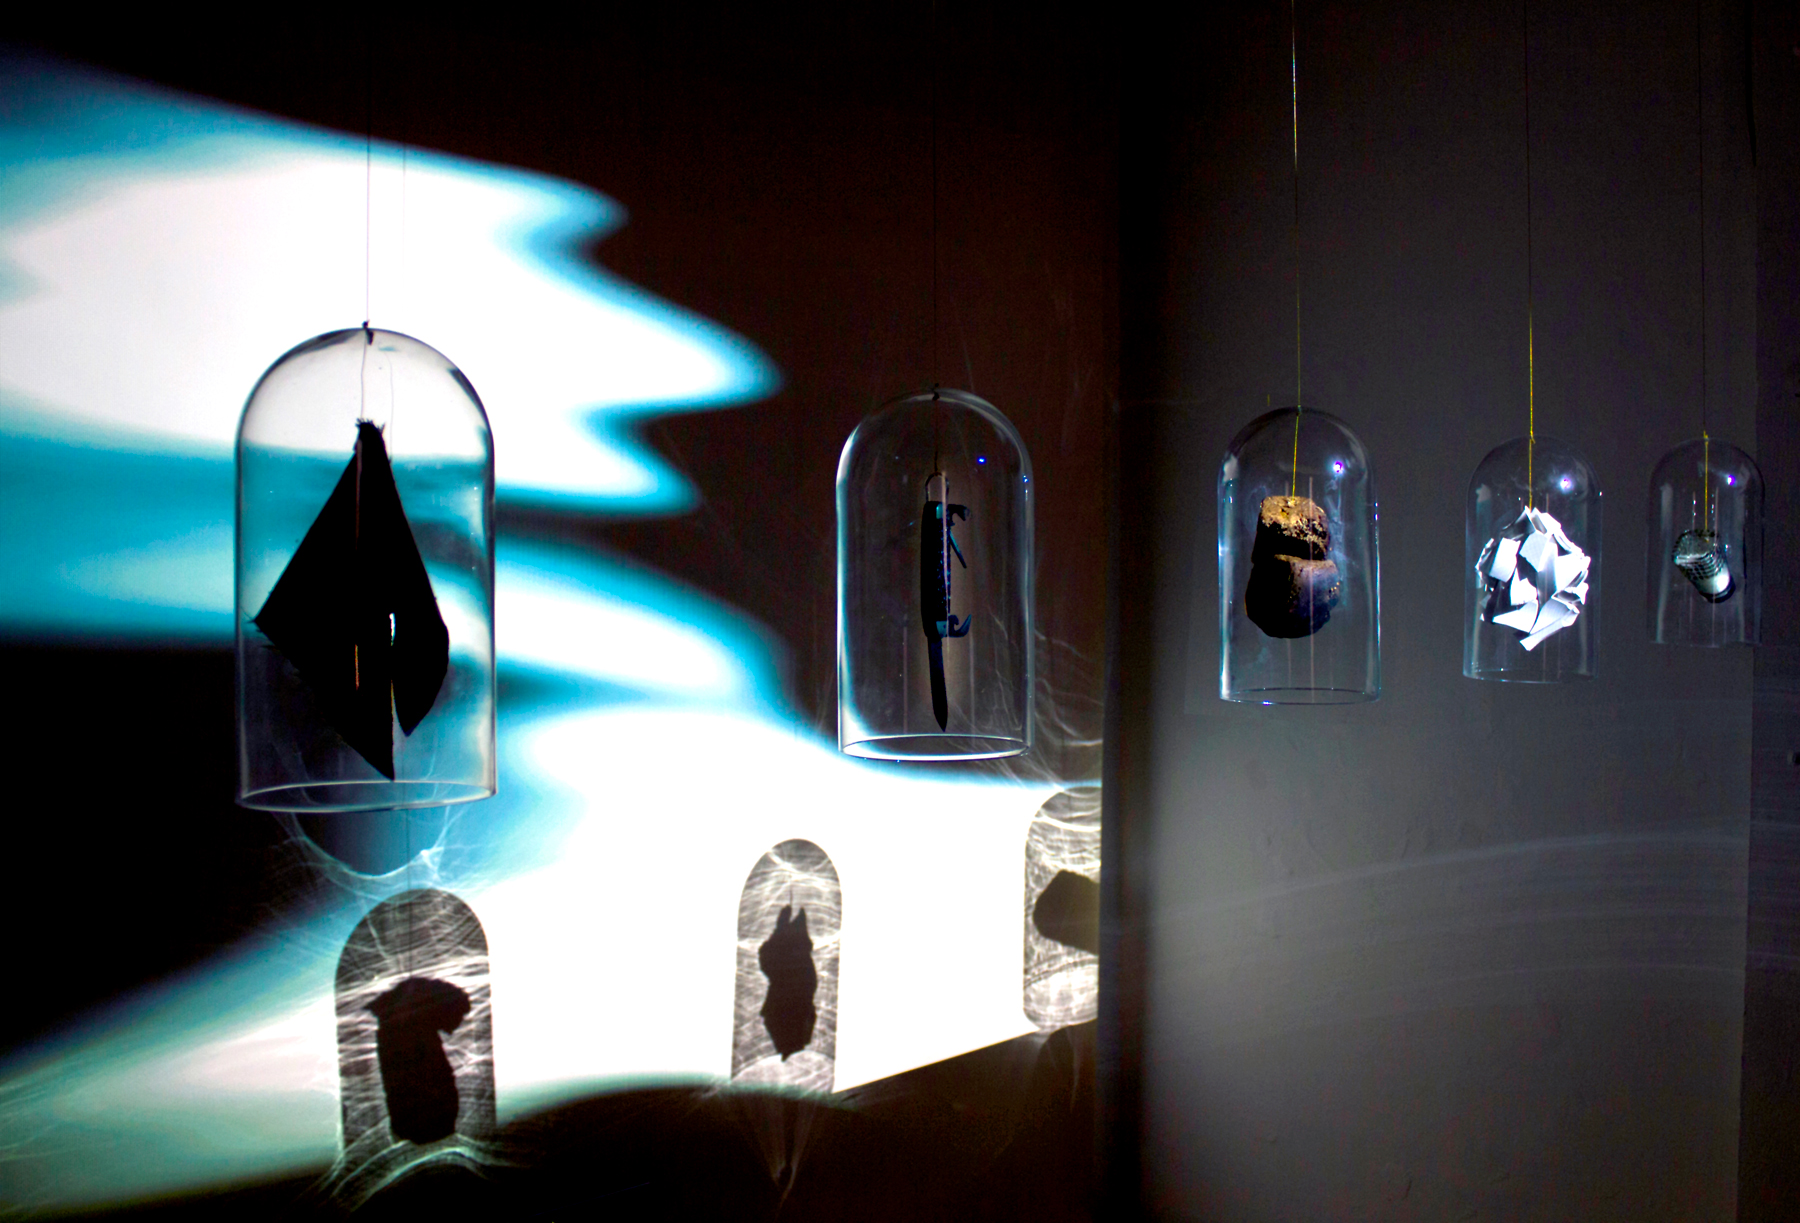 Knock on Wood: Exploring the power of objects and superstitions, art exhibit @ Plummer Park Long Hall // photo source: noyskyprojects.com